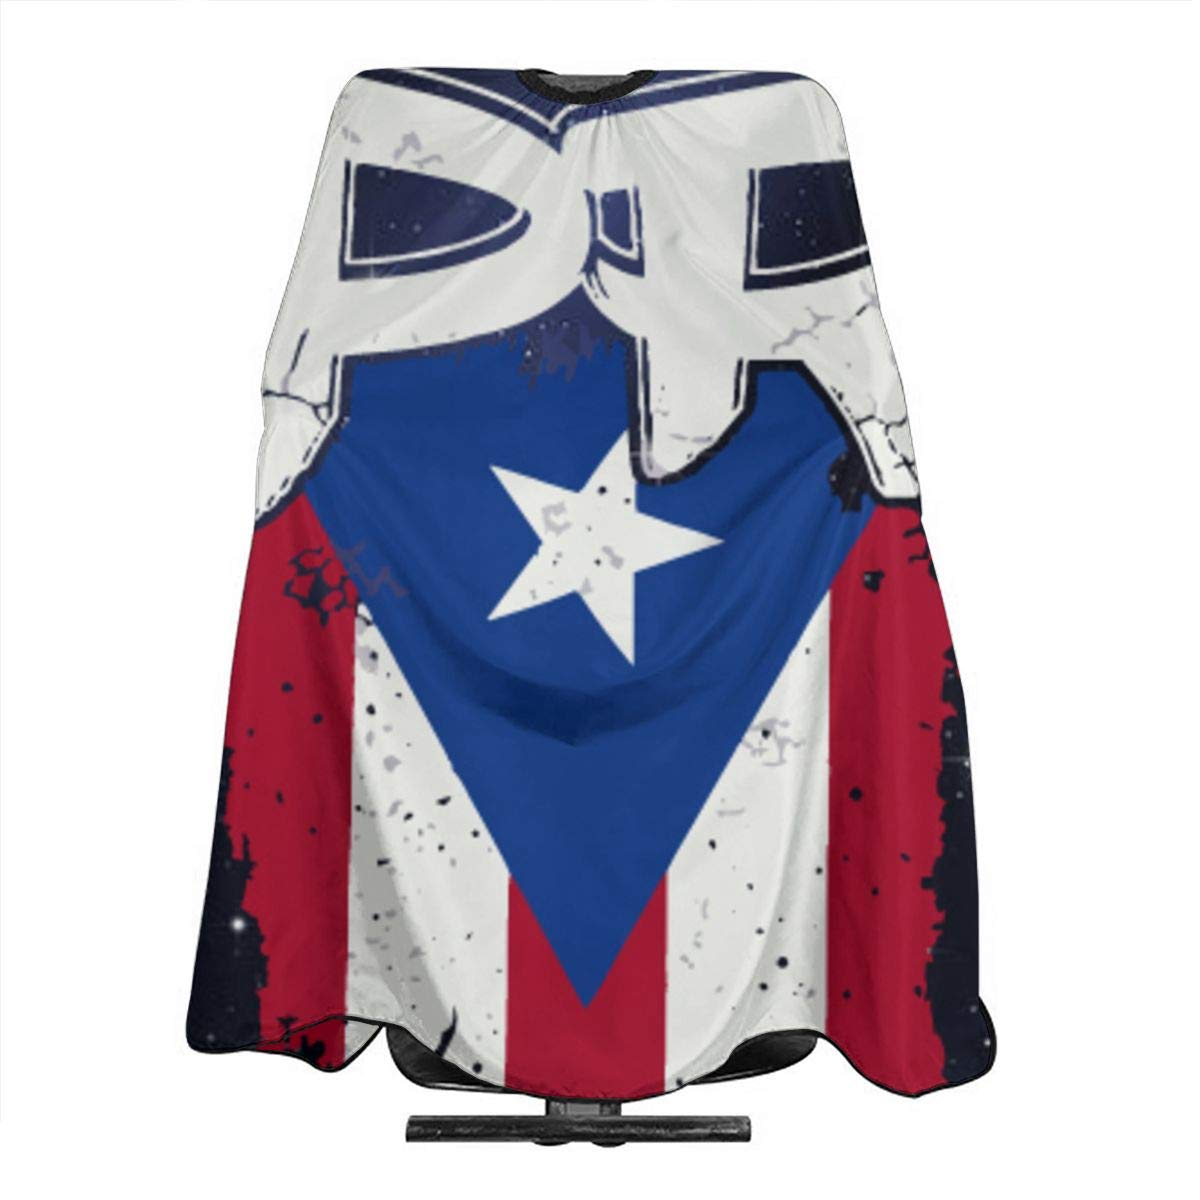 Puerto Rico PR Flag Boricua Hair Salon Cape For Stylist Hair Cutting Apron Barber Cover For Clients Styling Professional Home Hairdressing Dye Coloring